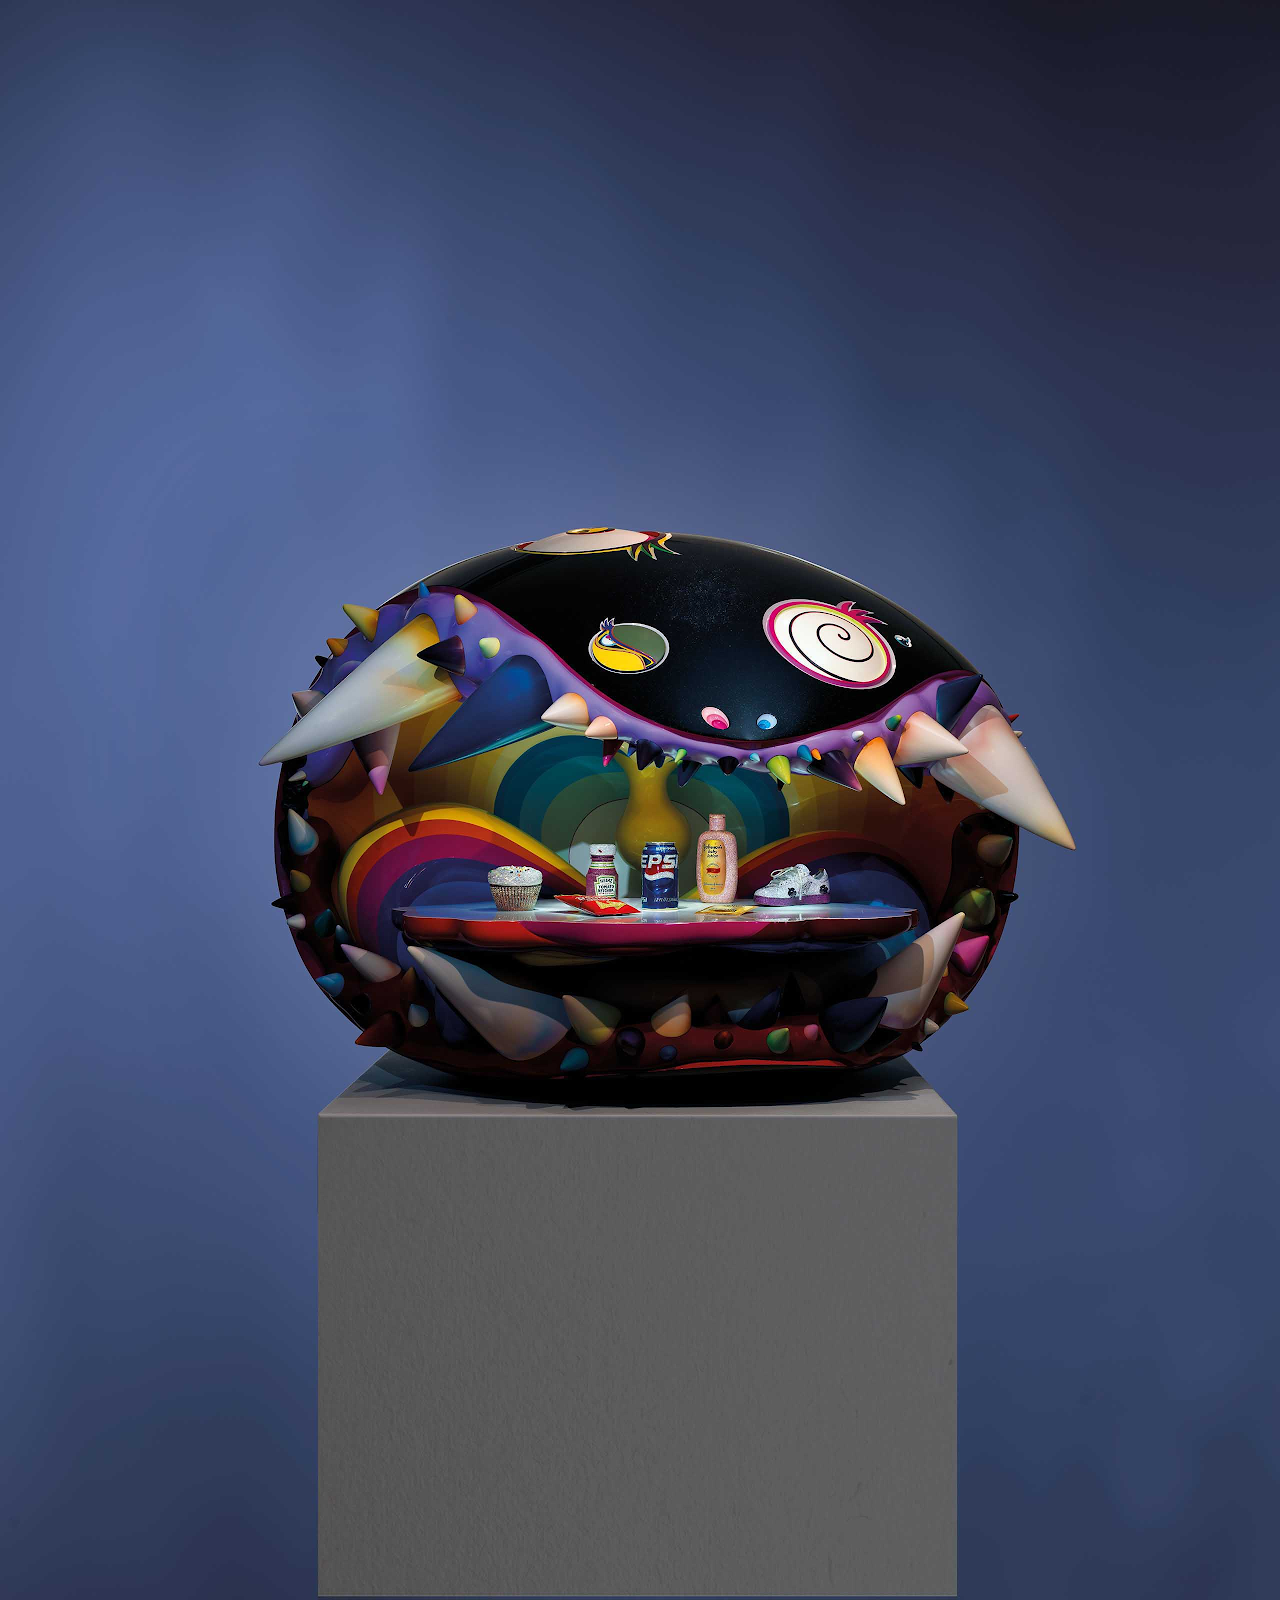 Takashi Murakami and Pharrell Williams, The Simple Things. Image from Christie's.